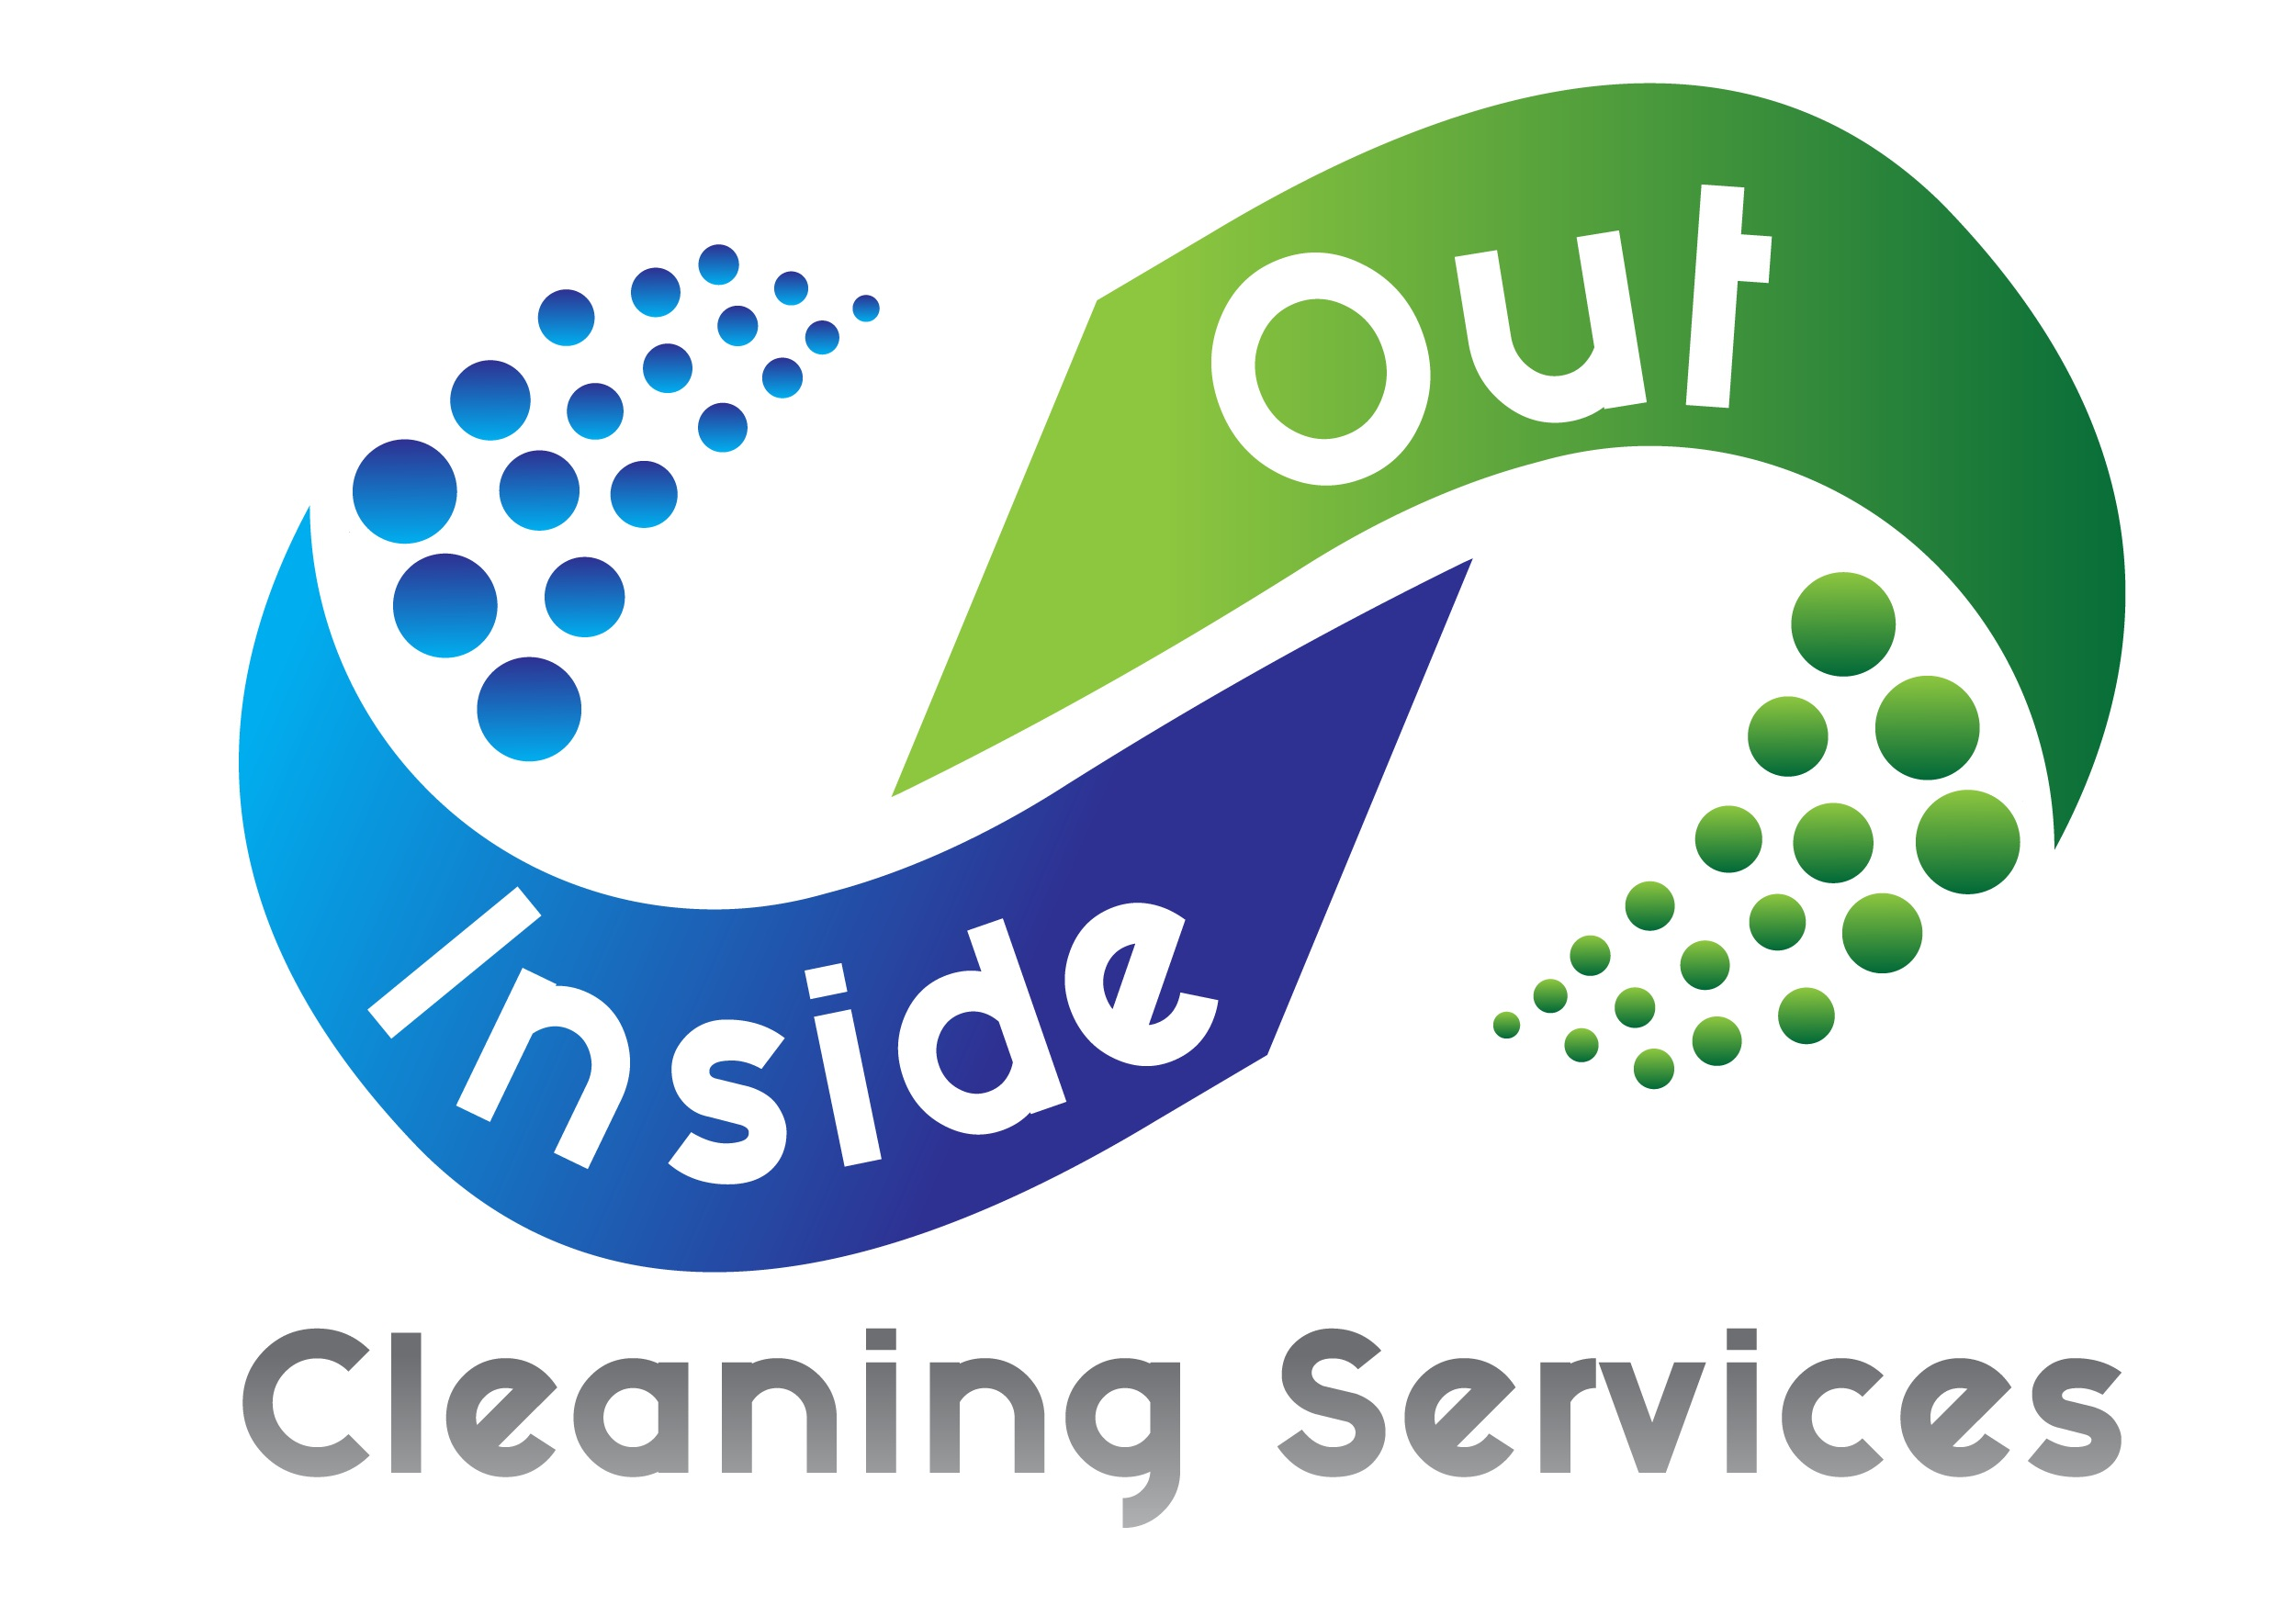 cropped-InsideOut-Cleaning-Services-revised-design-1.png